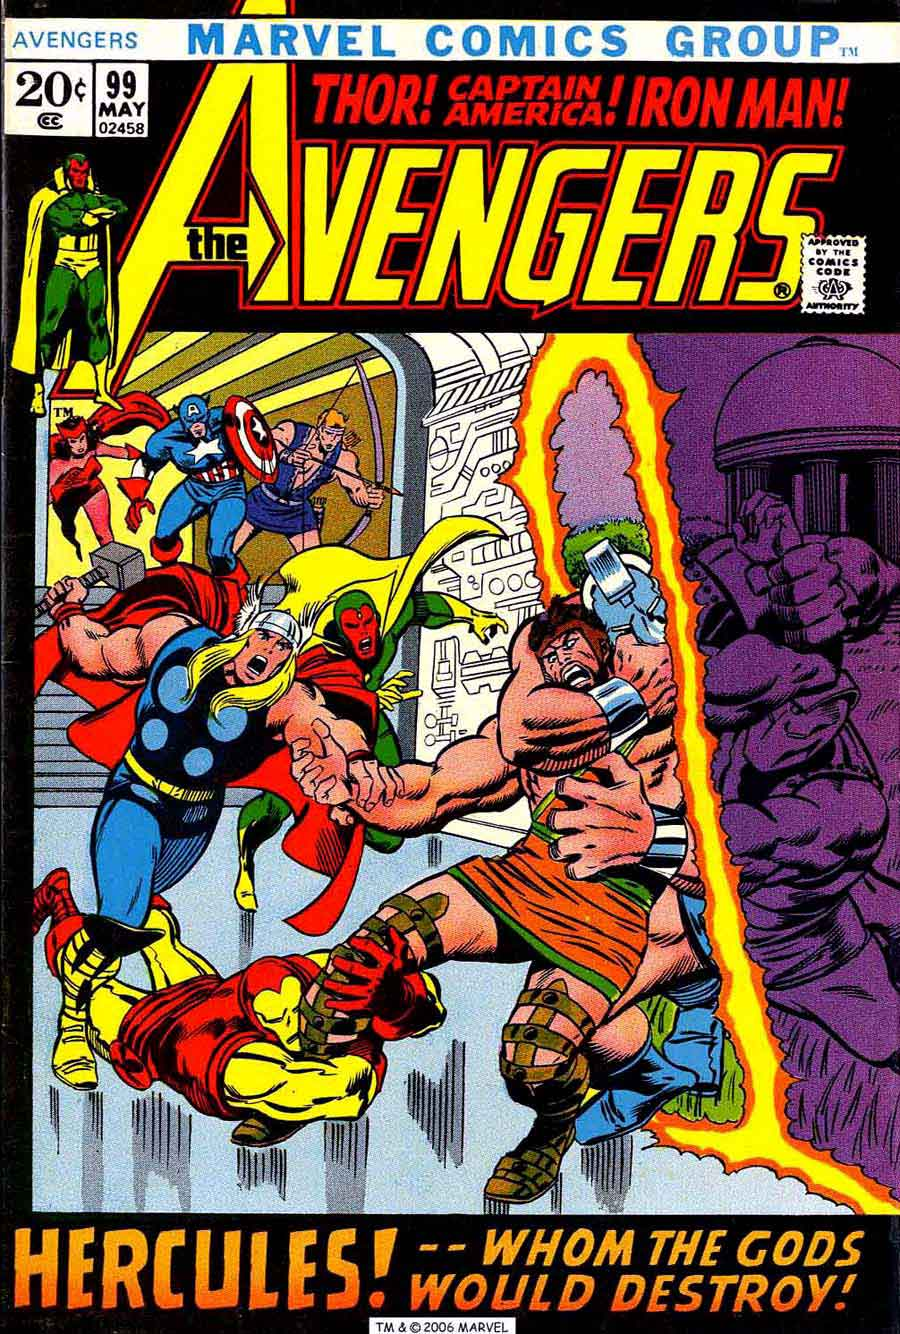 Marvel Comic Book Cover Art : Avengers barry windsor smith art cover pencil ink